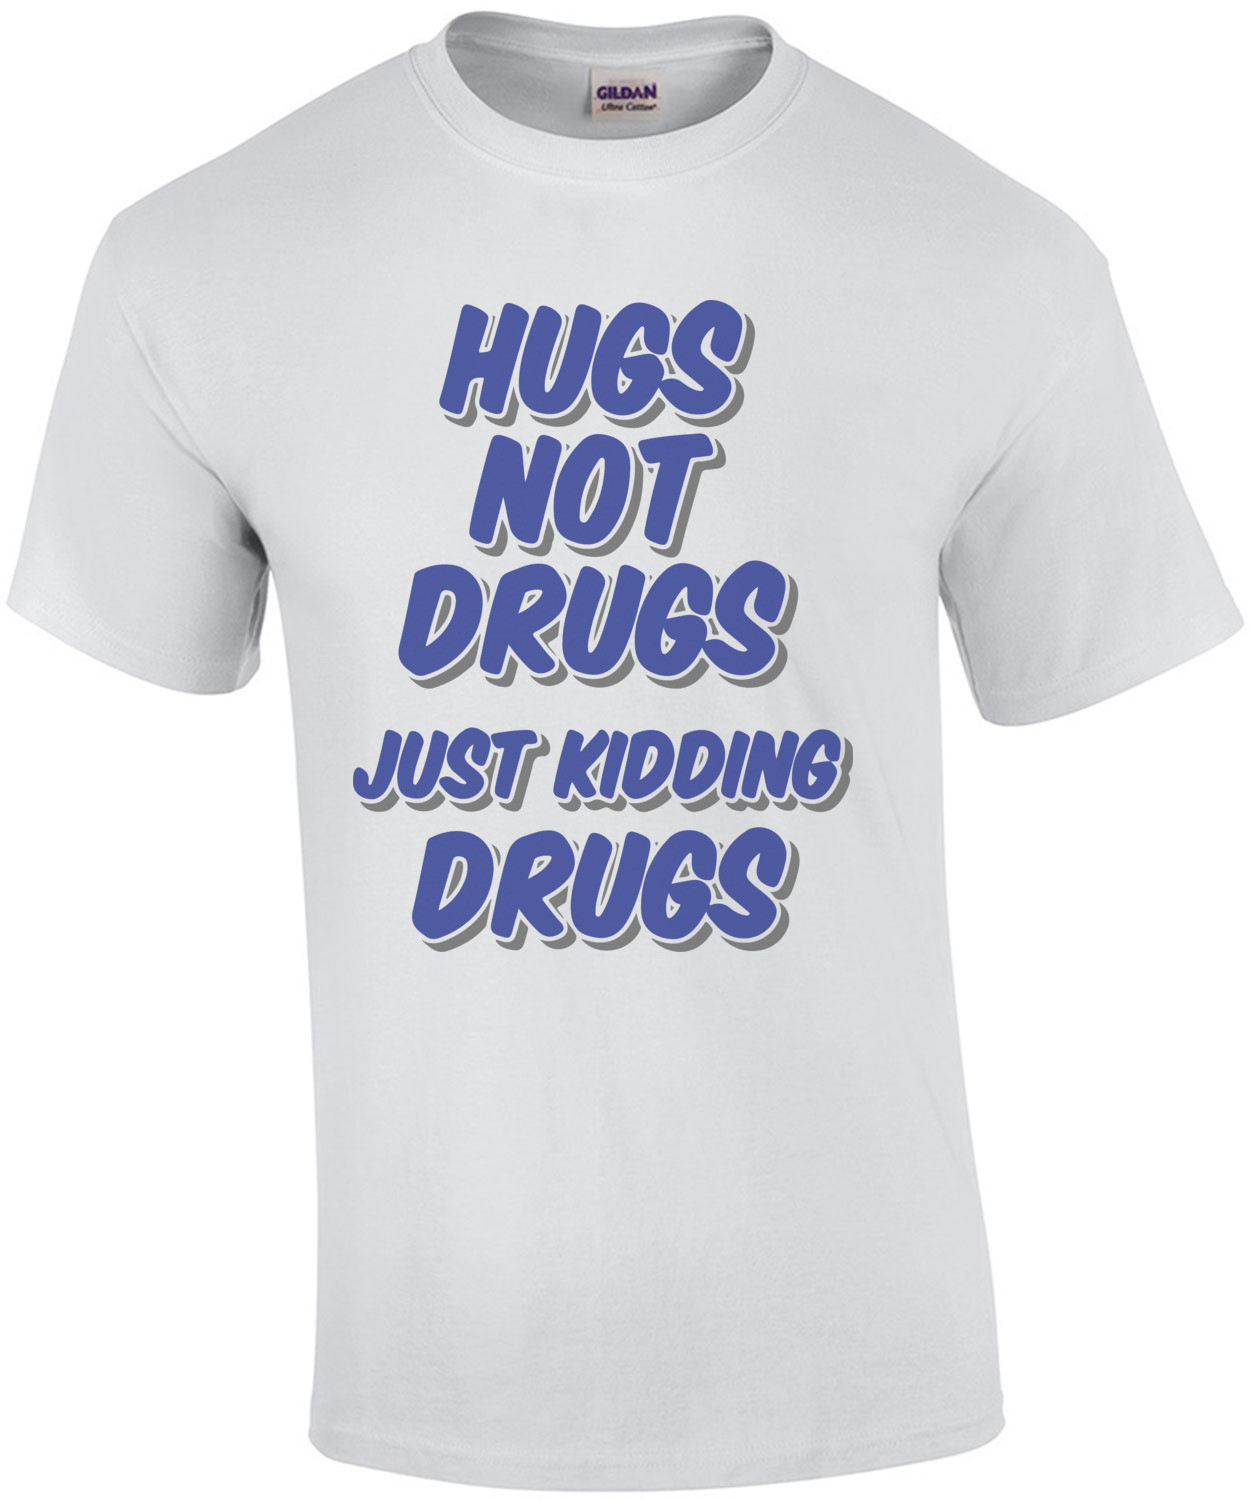 Hugs Not Drugs Just Kidding Drugs T-Shirt